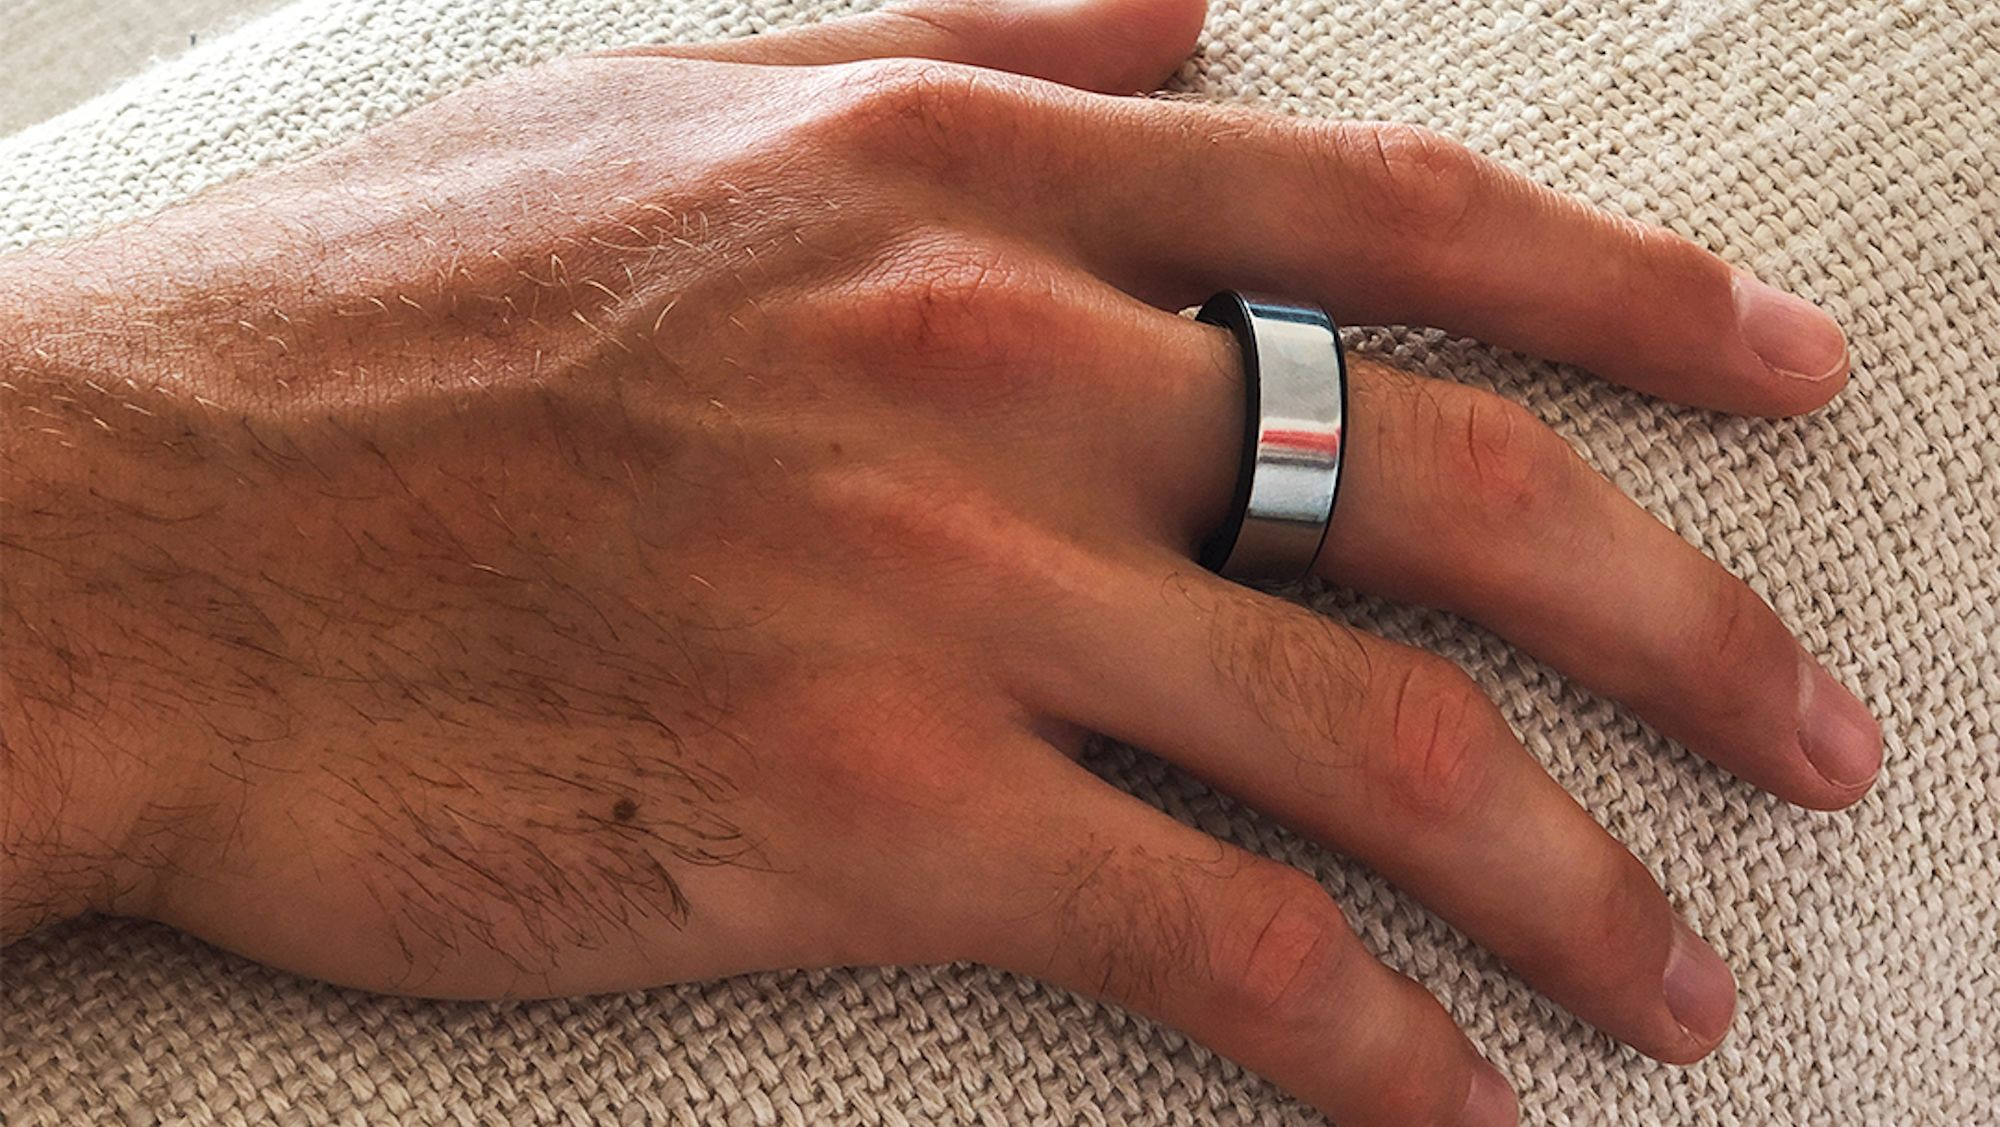 This Smart Ring Offers Personalized Wellness Advice by Analyzing Your Sleep Patterns and Fitness Levels